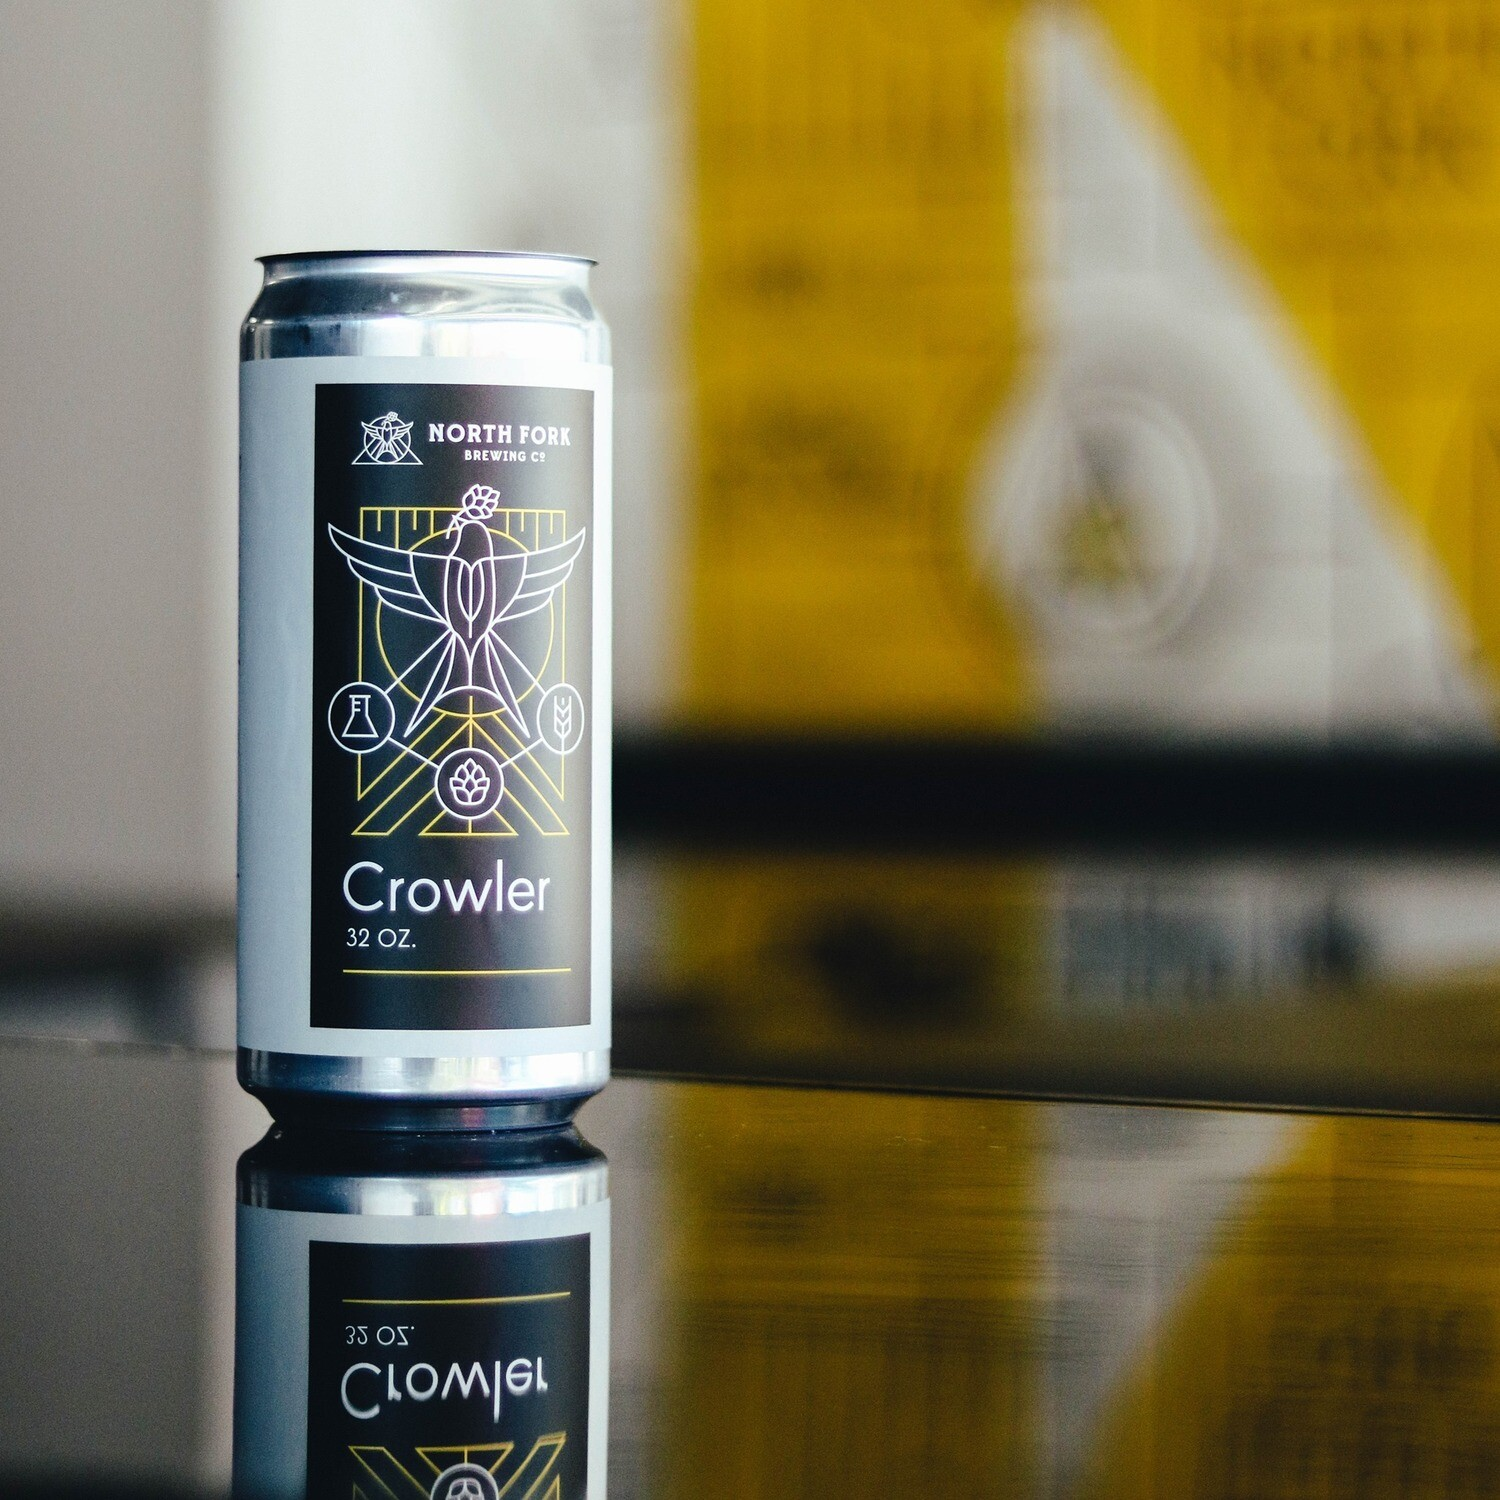 Pierce the Ale: Crowler